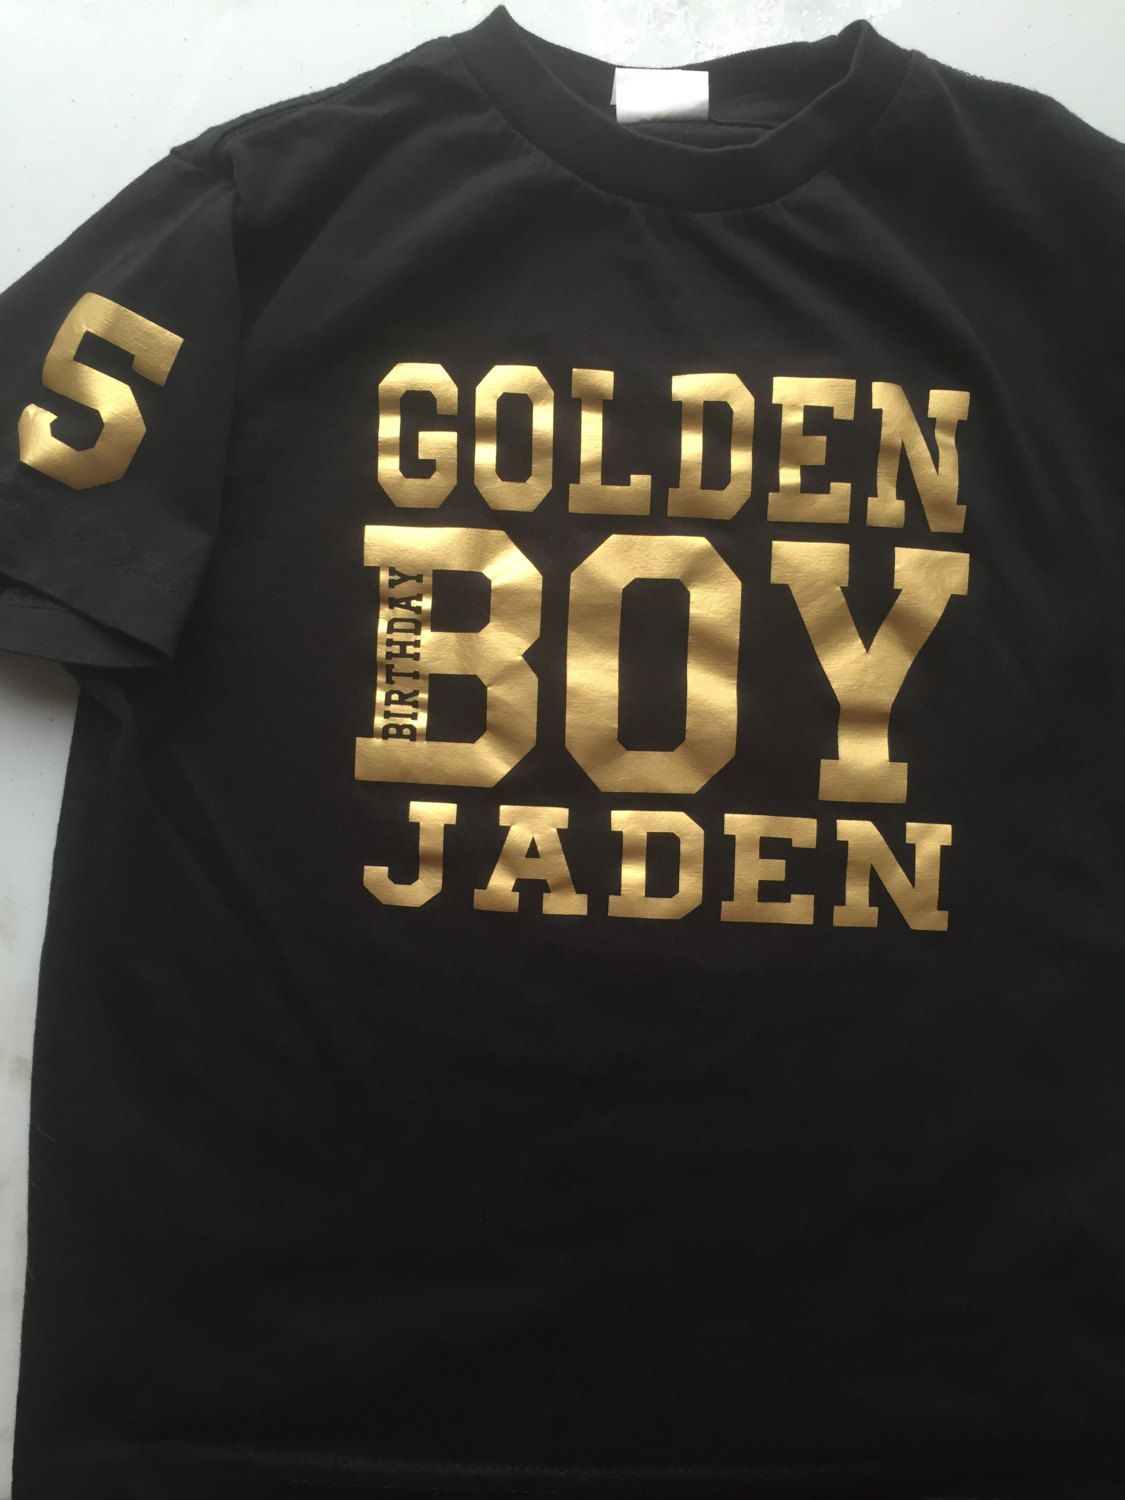 Golden Birthday Boy Shirt Tshirt Personalize With Name Age By DesignsbyJackelyn On Etsy